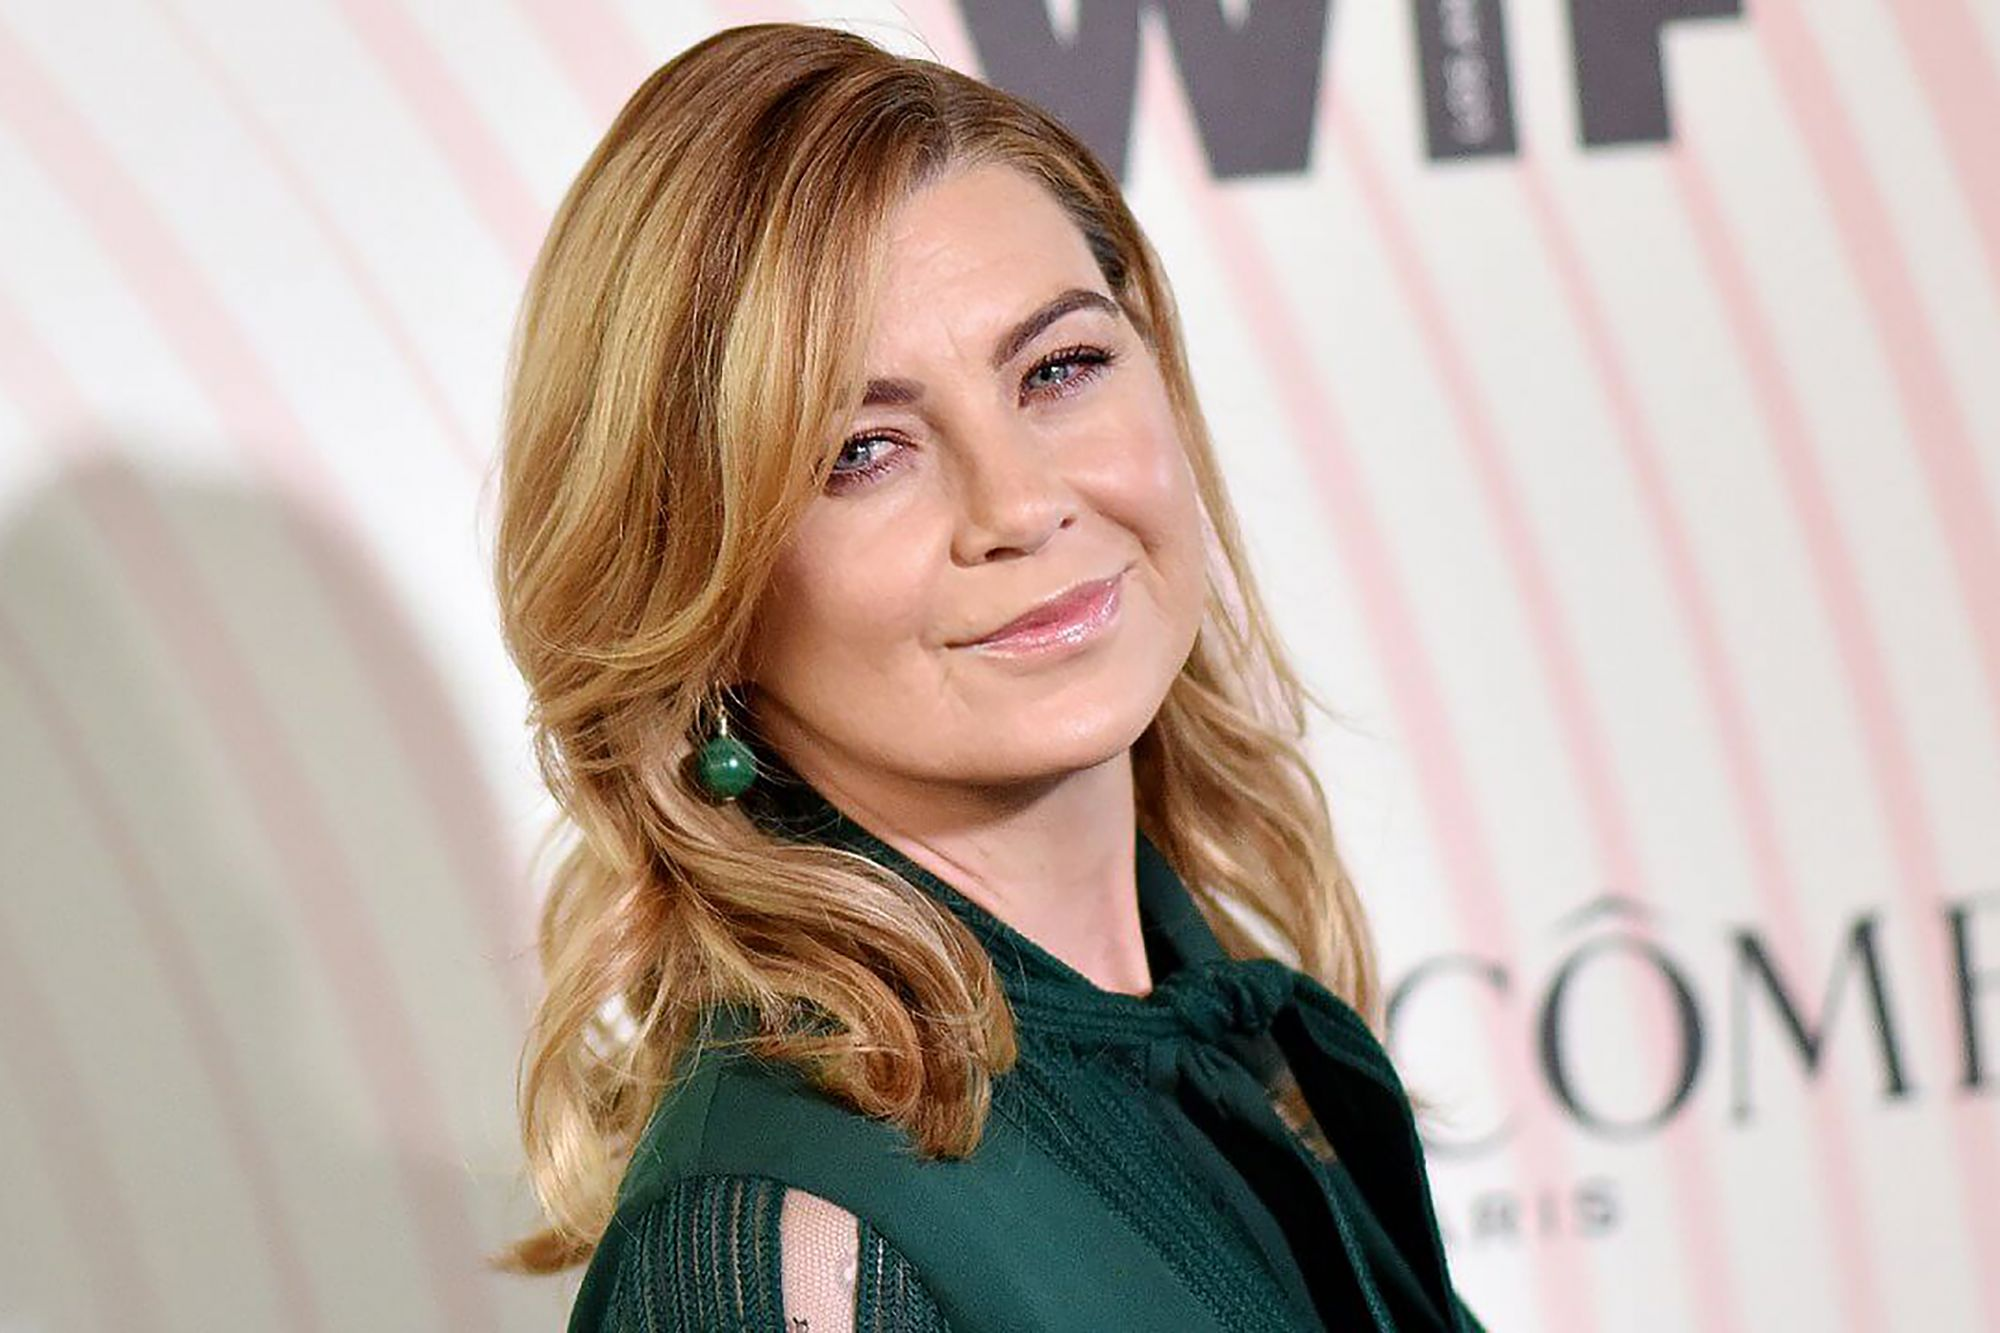 Get Salary Negotiating Tips From Ellen Pompeo, One of the Highest Paid Women on TV